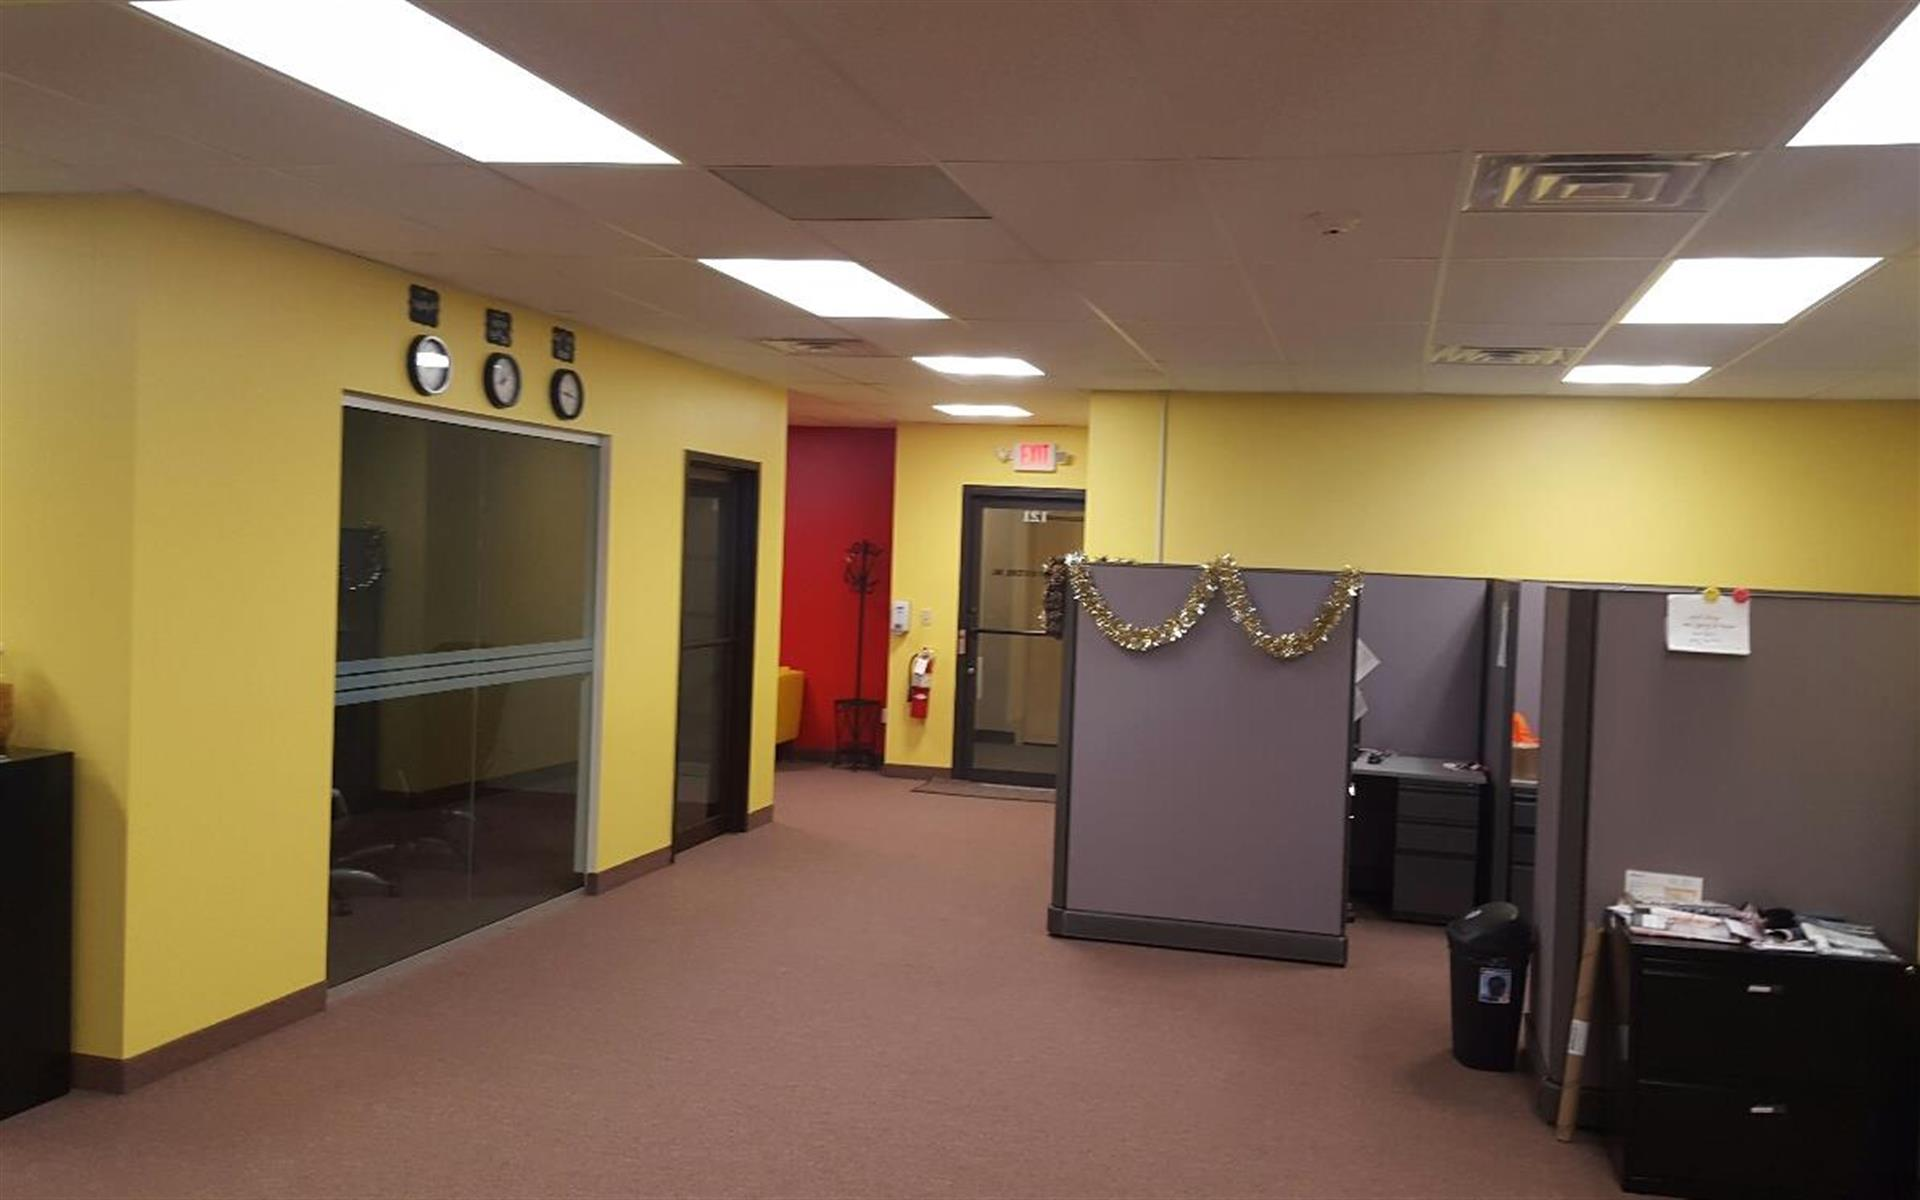 US IT Solutions-Team Space - Colorful space easy commute to NYC